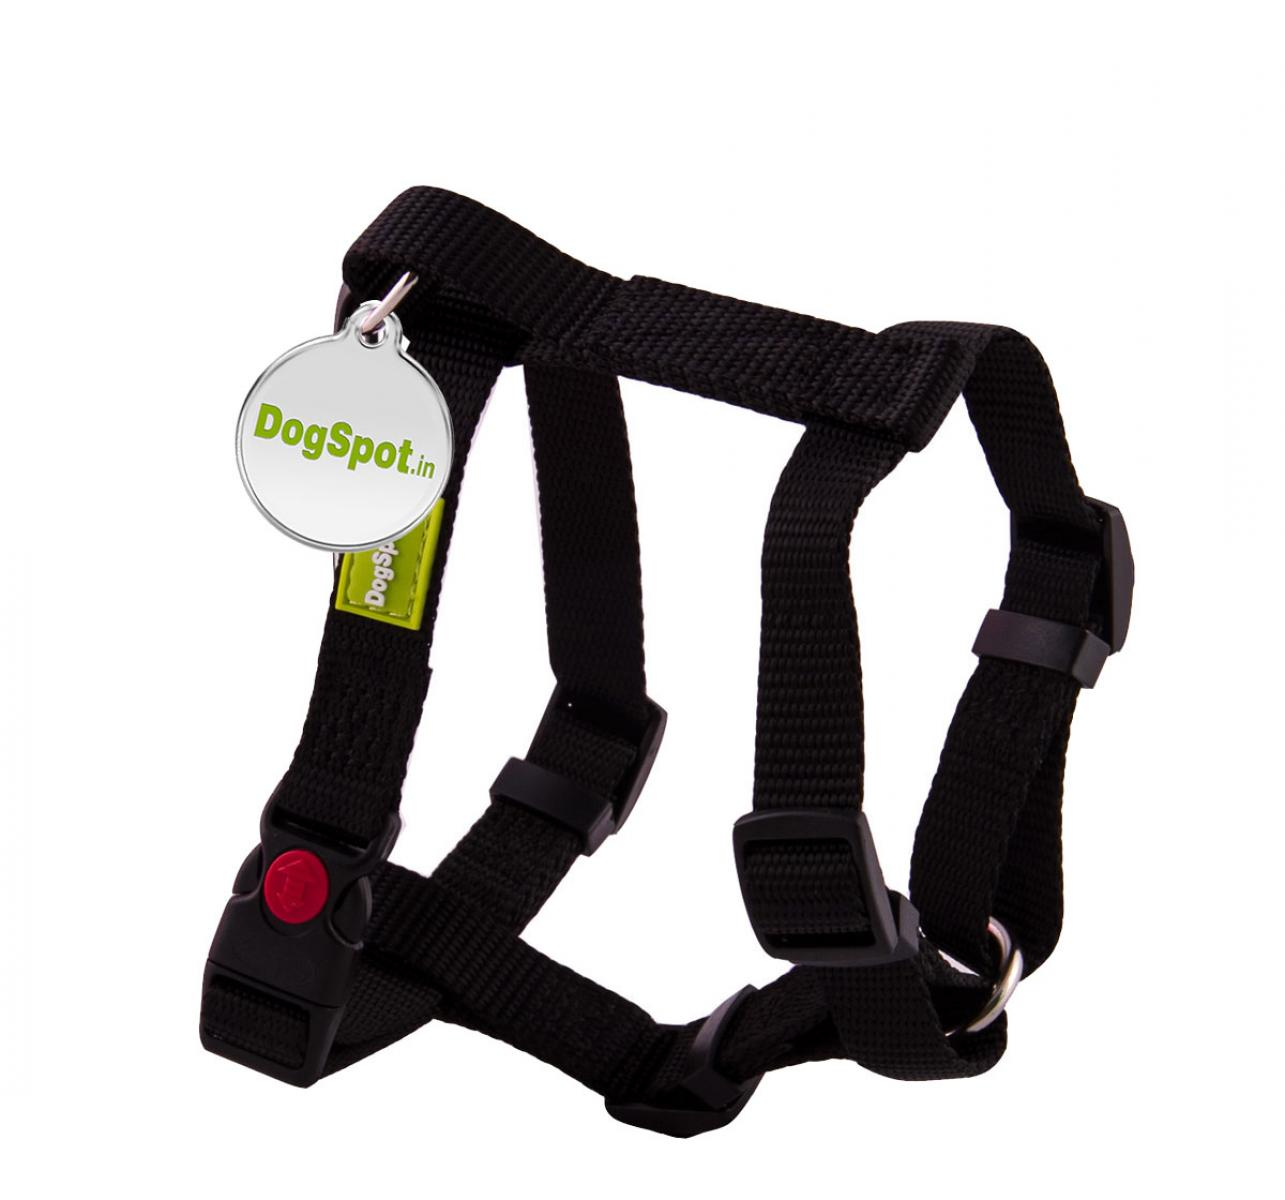 DogSpot Premium Harness Black - Small With Wag Tag